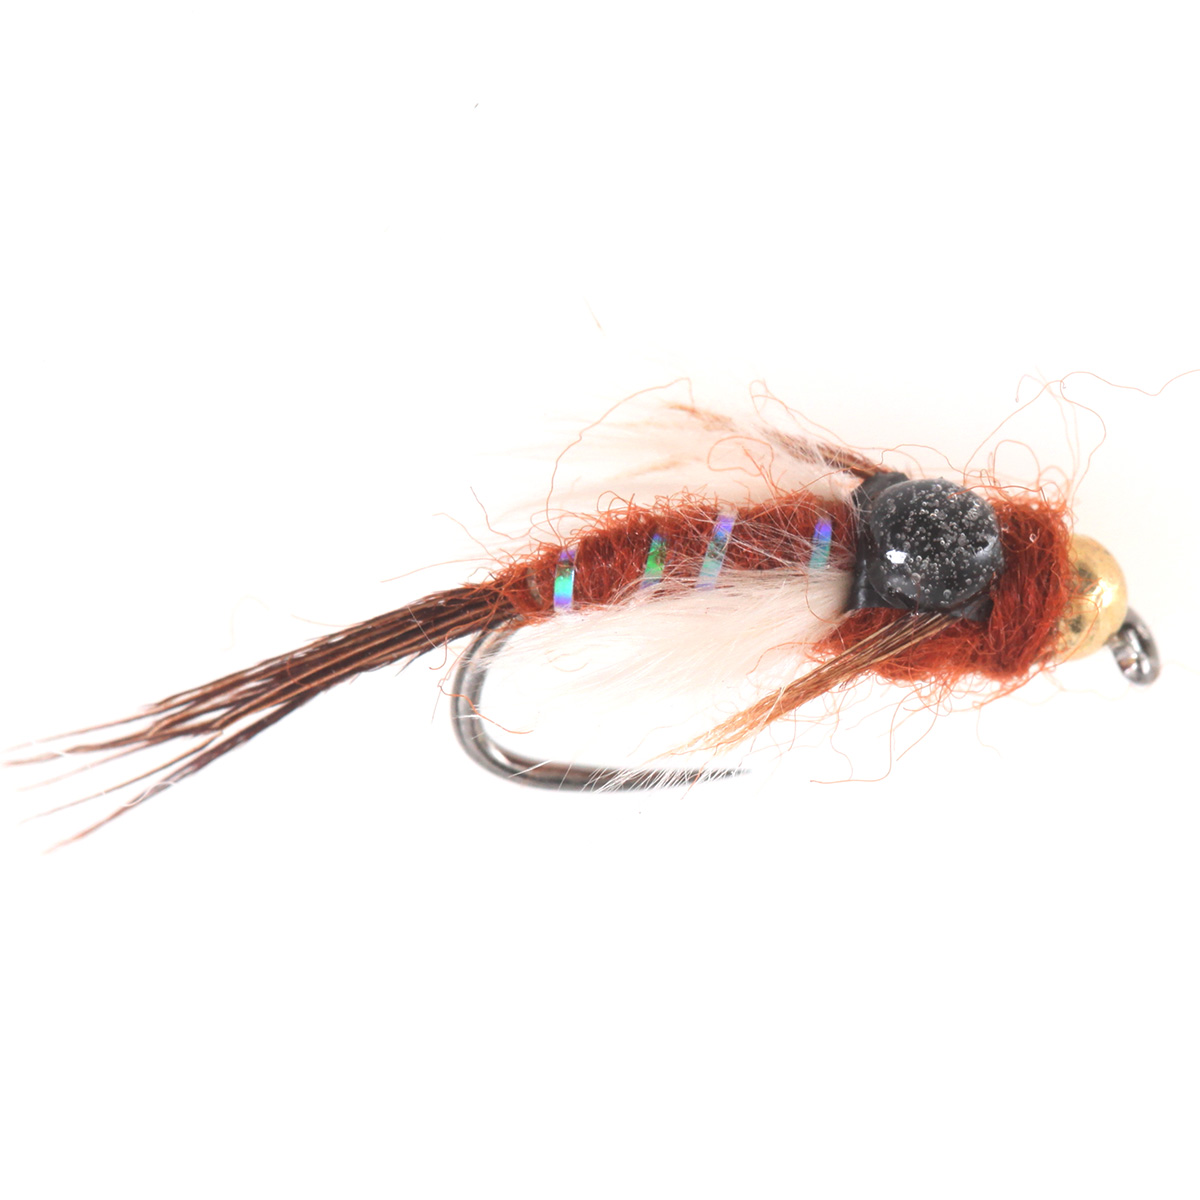 Tungsten BH Epoxy Back PMD Pale Morning Dun